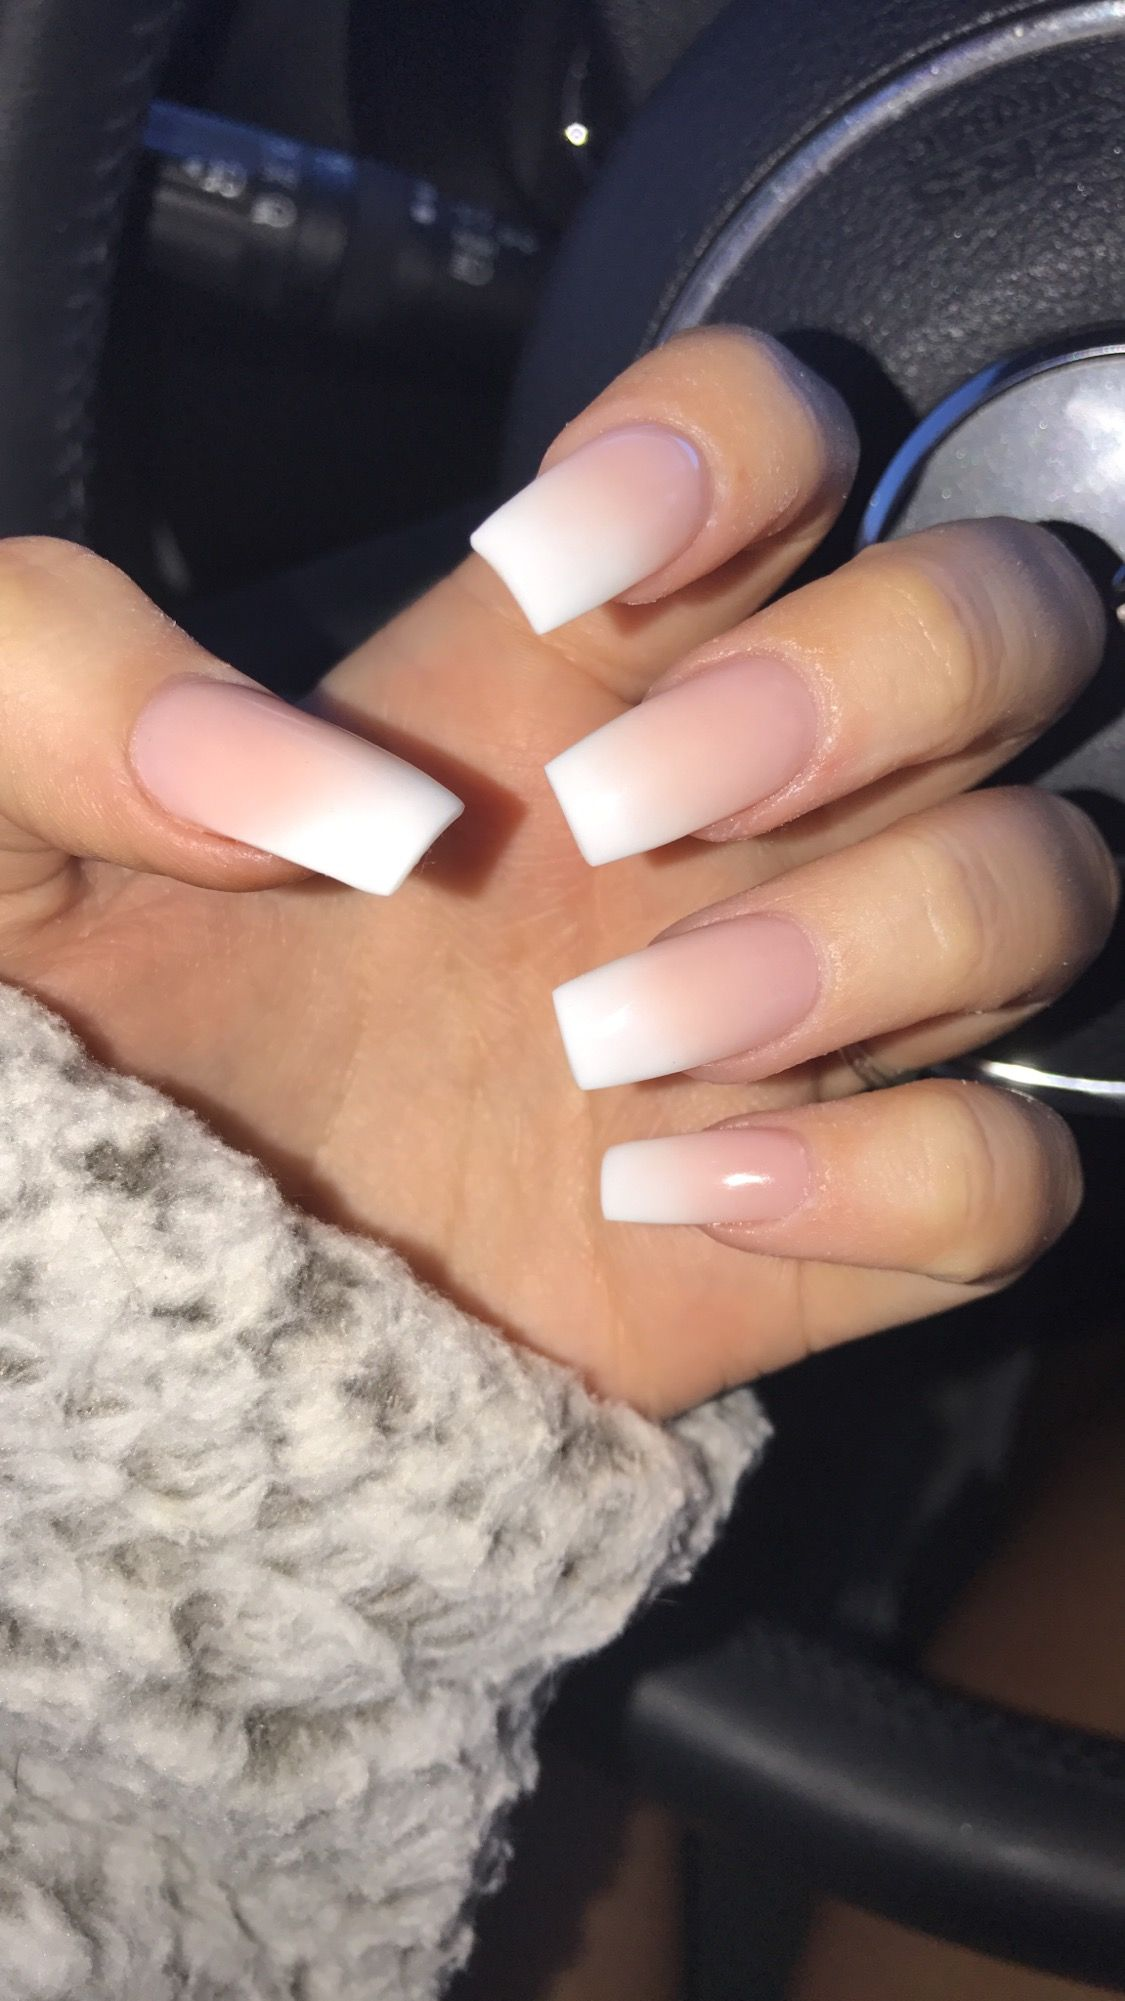 long pretty nails tumblr » 4K Pictures | 4K Pictures [Full HQ Wallpaper]